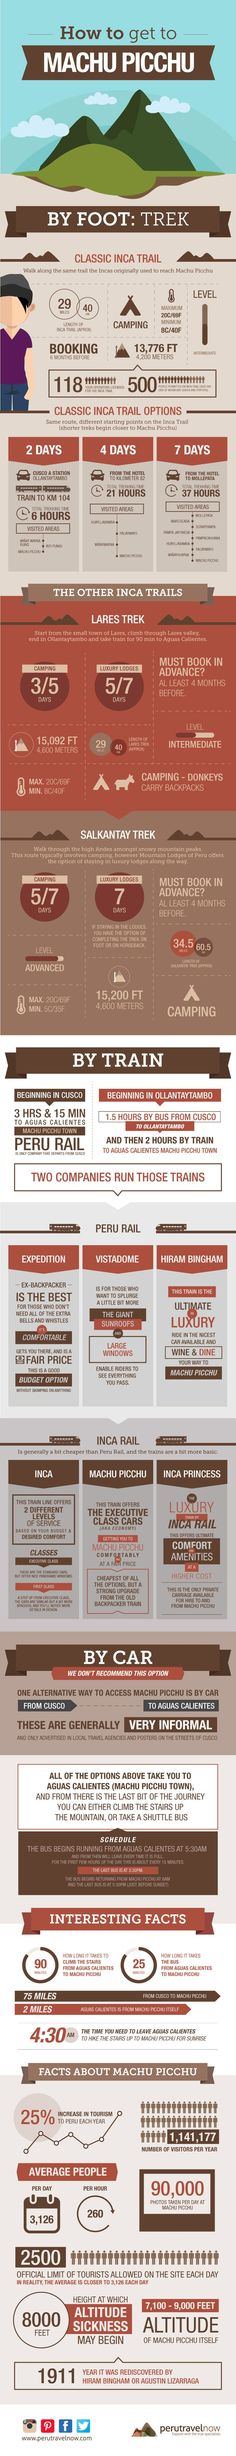 Travel Peru l How to Get to Machu Picchu (Infographic) l @perutravelnow | #travel #traveltips #peru #machupicchu